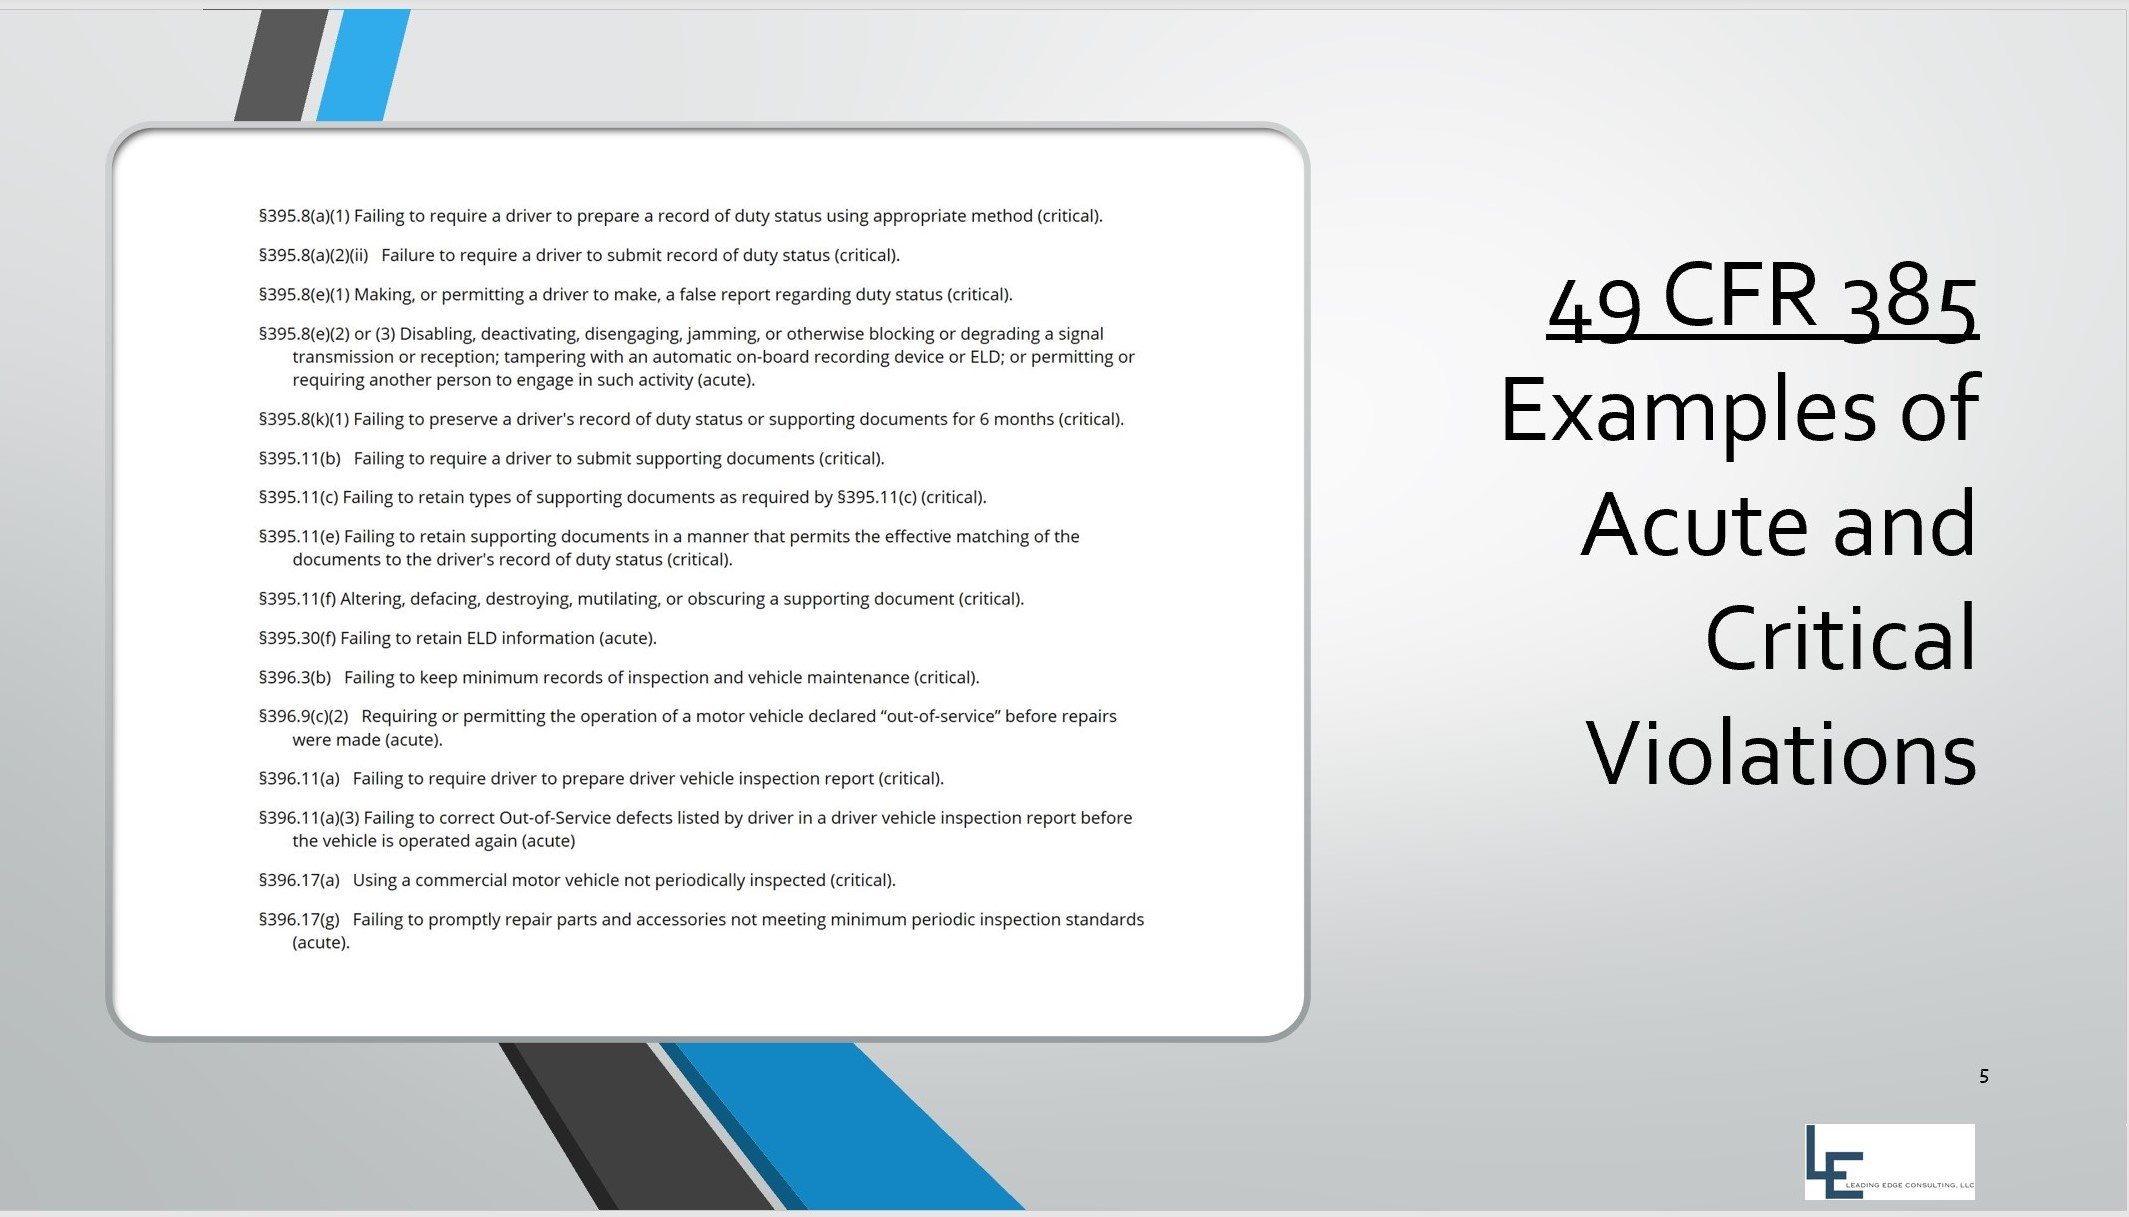 49 CFR 385 - Acute and Critical Violations - Example